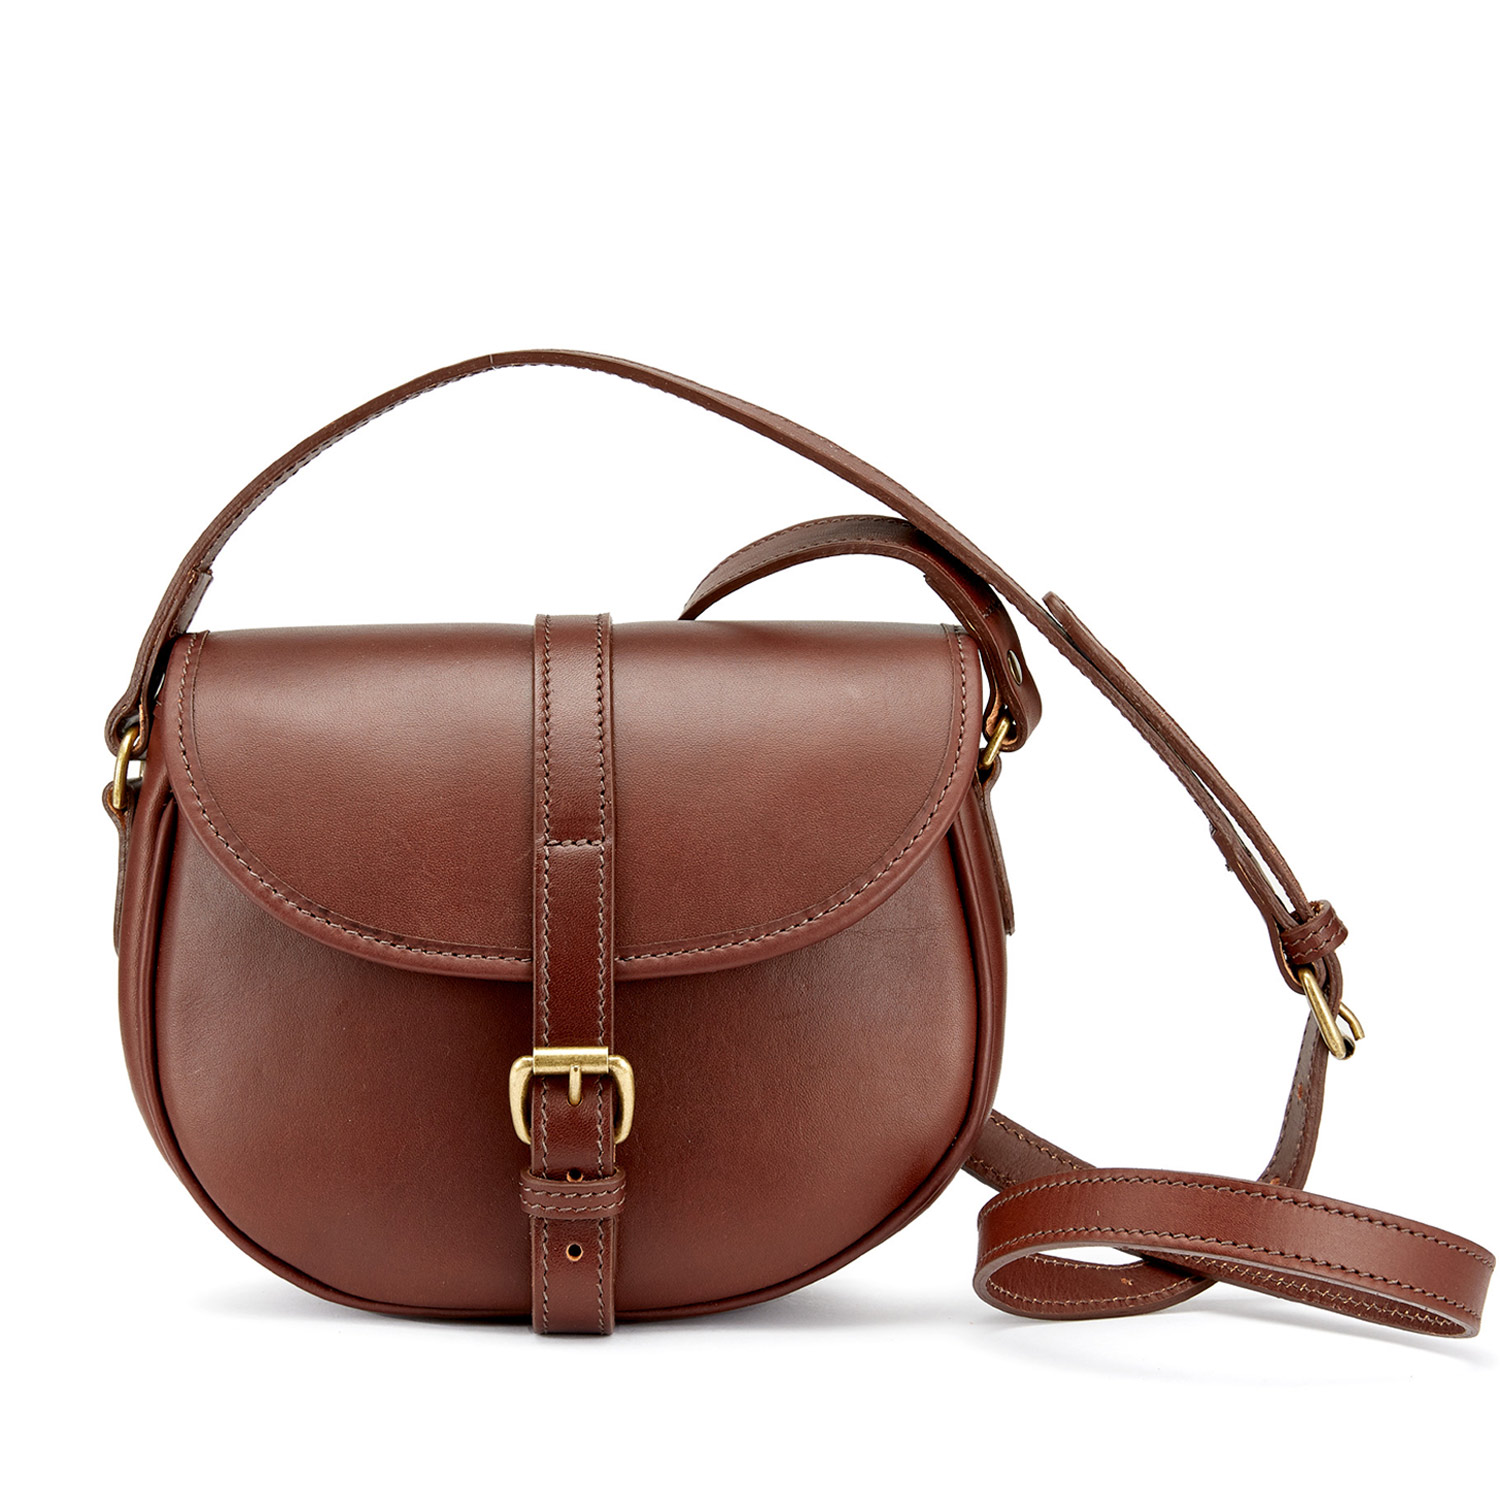 Cardington Leather Crossbody Handbag in Chestnut, medium, made in england by Tusting